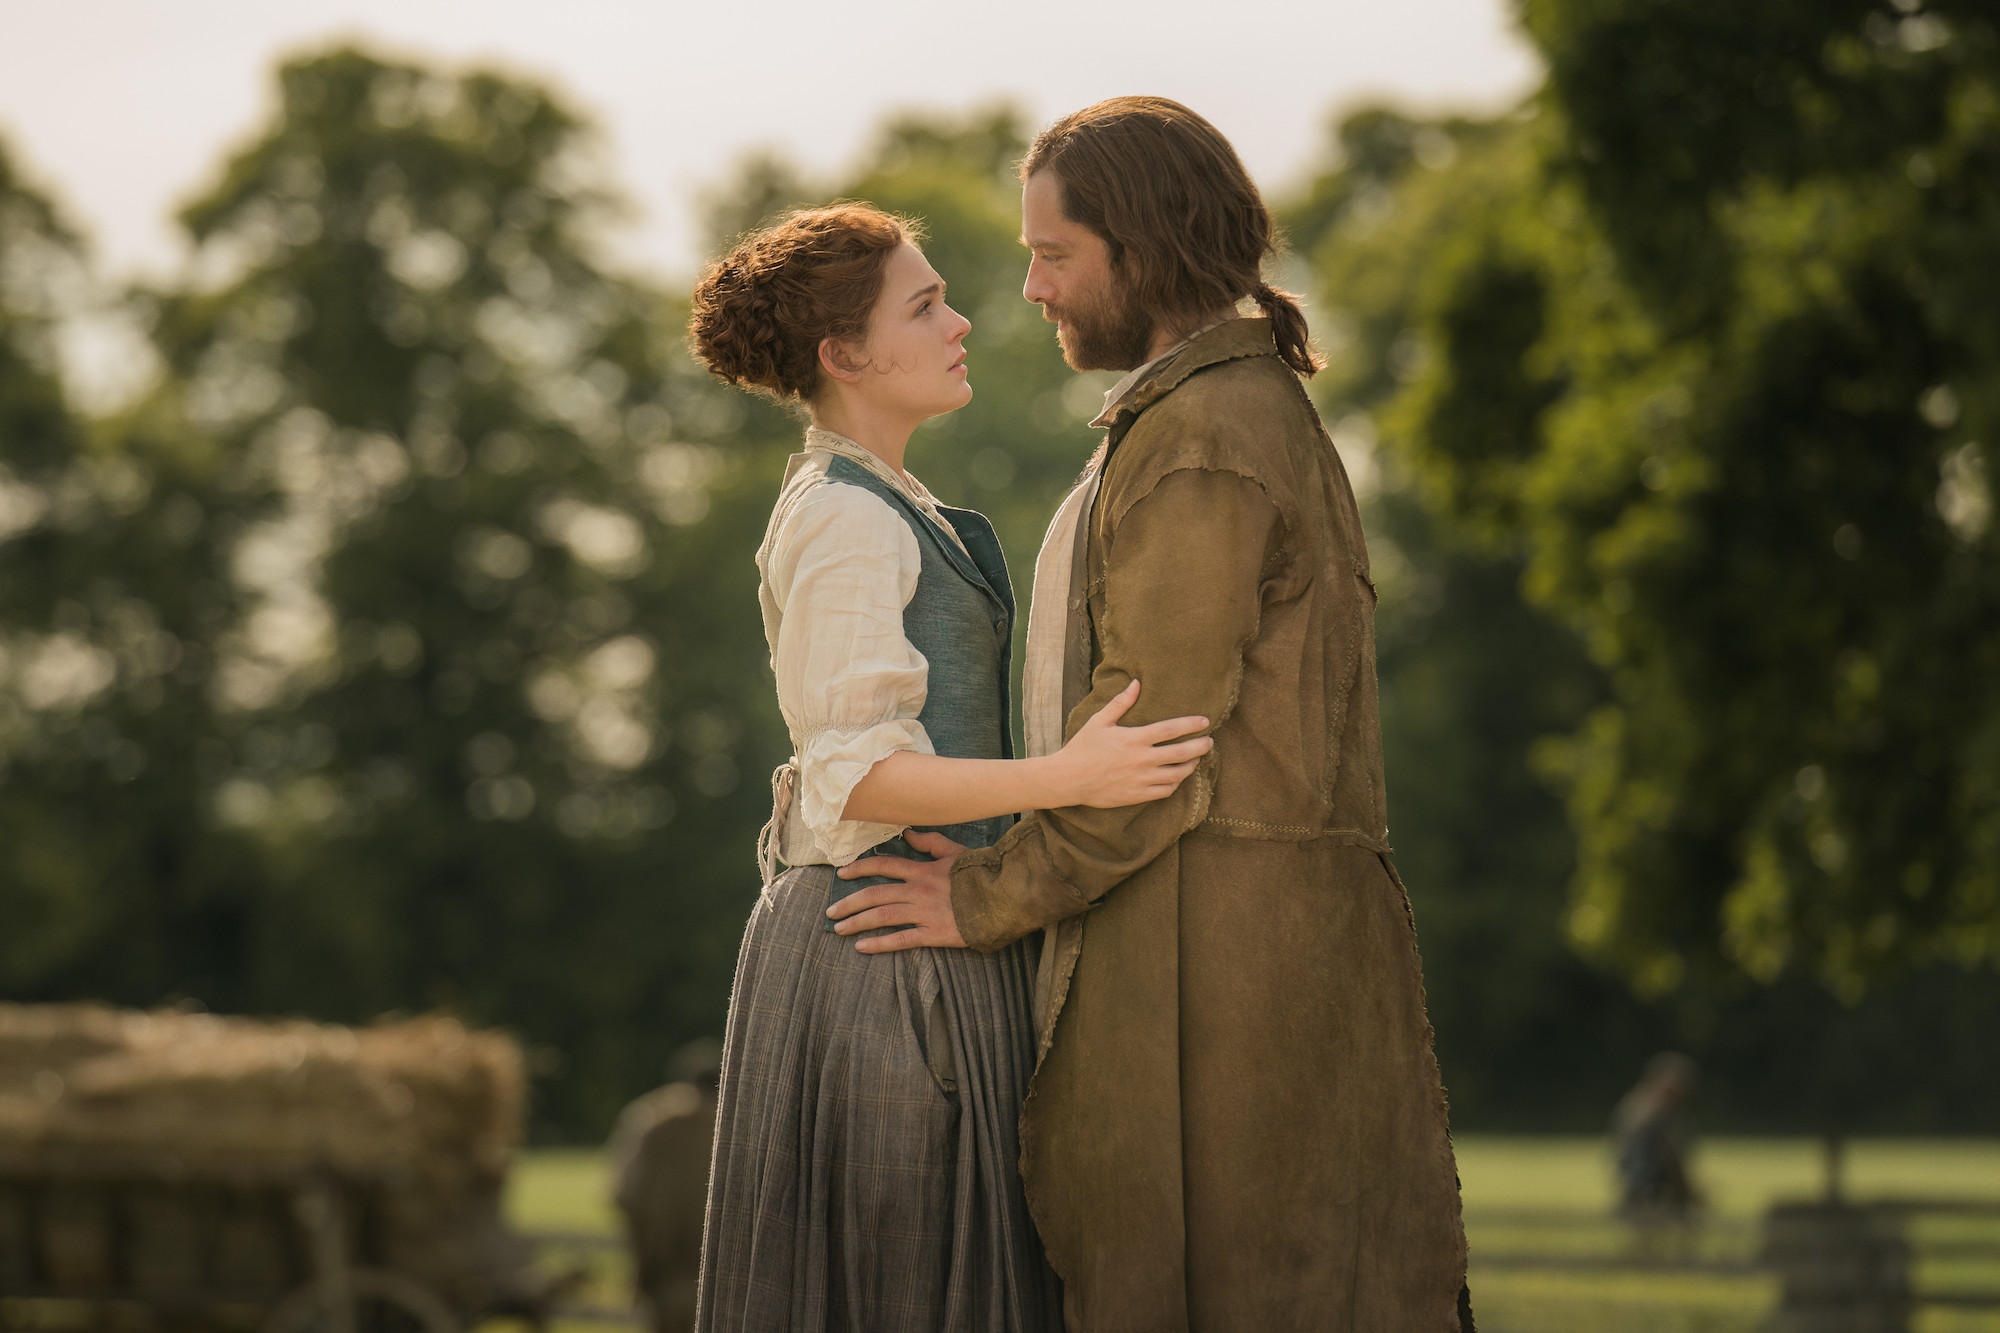 The world of Outlander will be showcased at the event